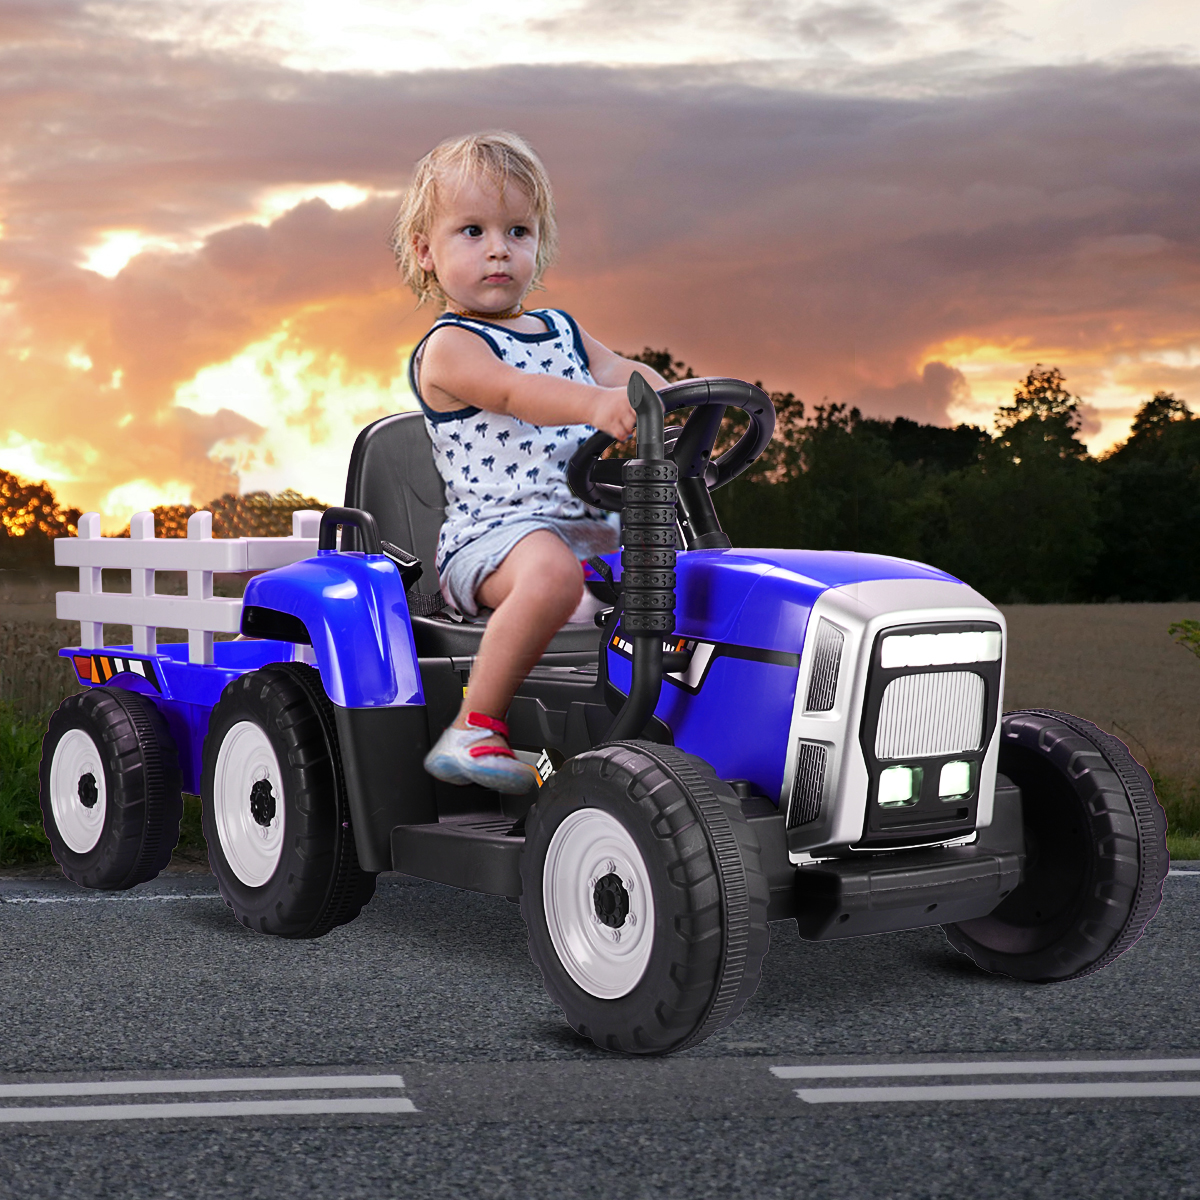 12V Electric Kids Ride-On Tractor with Trailer, Blue 3 12